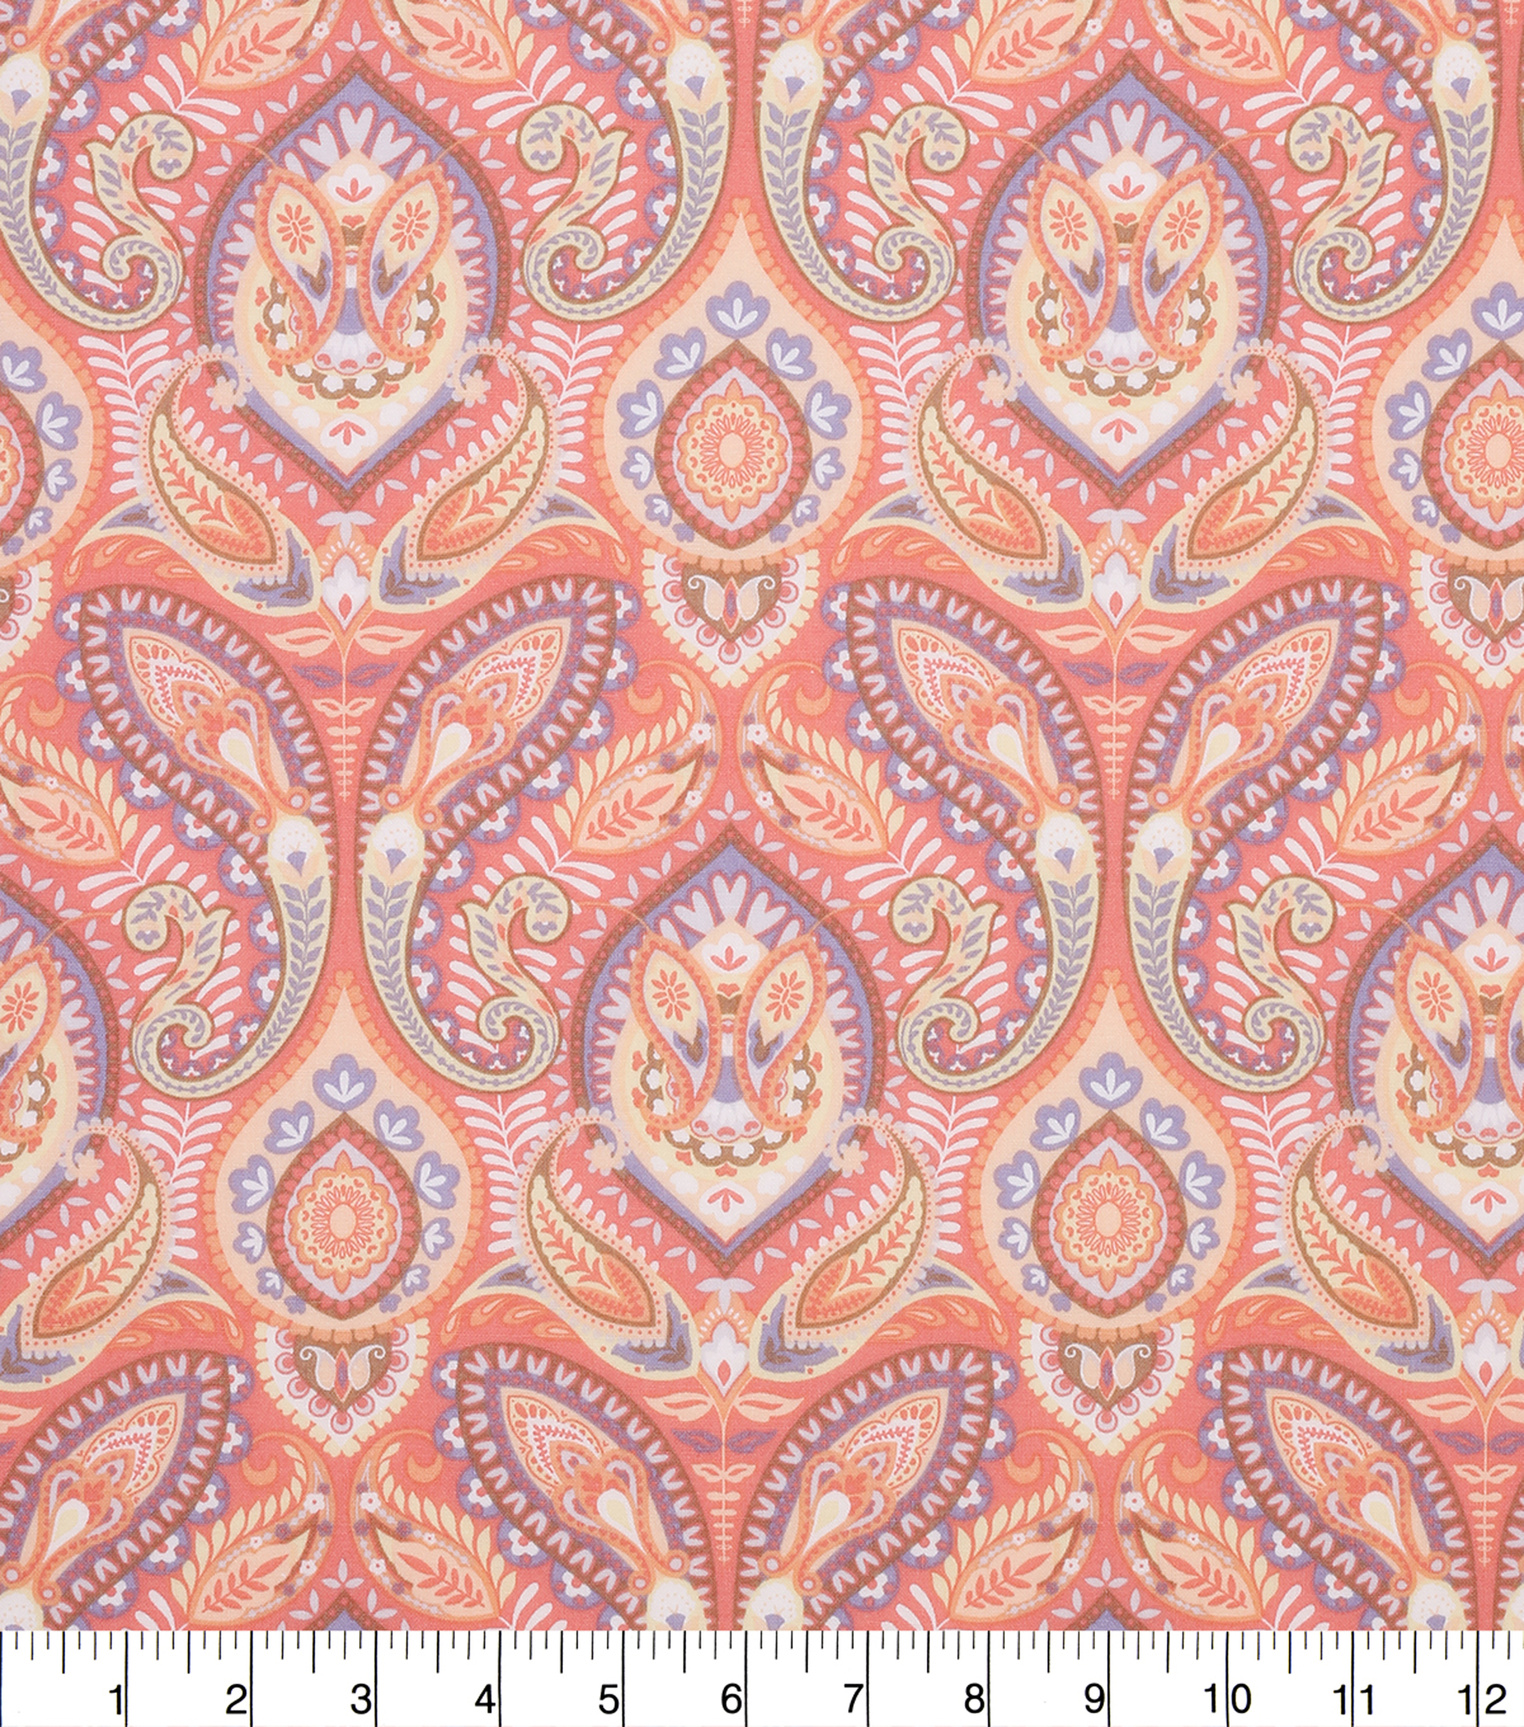 Keepsake Calico Cotton Fabric -Spring Floral Paisley Medallion